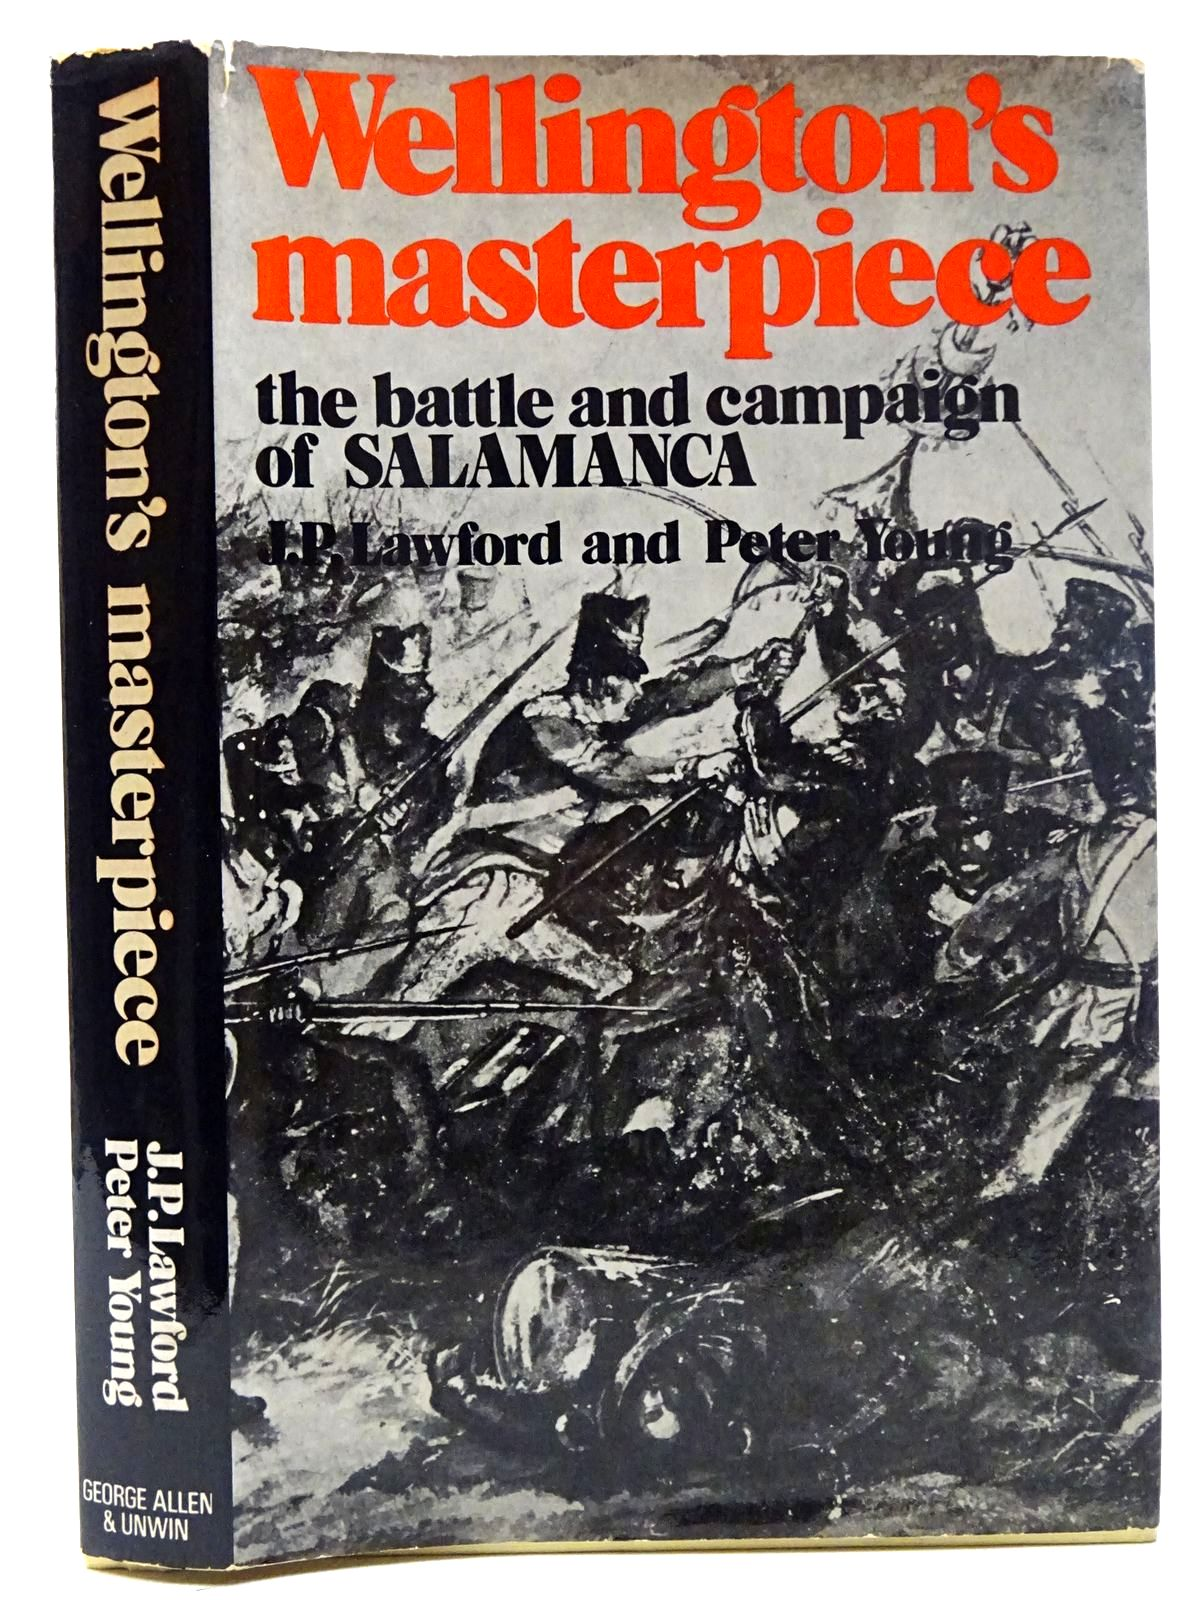 Photo of WELLINGTON'S MASTERPIECE THE BATTLE AND CAMPAIGN OF SALAMANCA written by Lawford, J.P. Young, Peter published by George Allen & Unwin Ltd. (STOCK CODE: 2126466)  for sale by Stella & Rose's Books